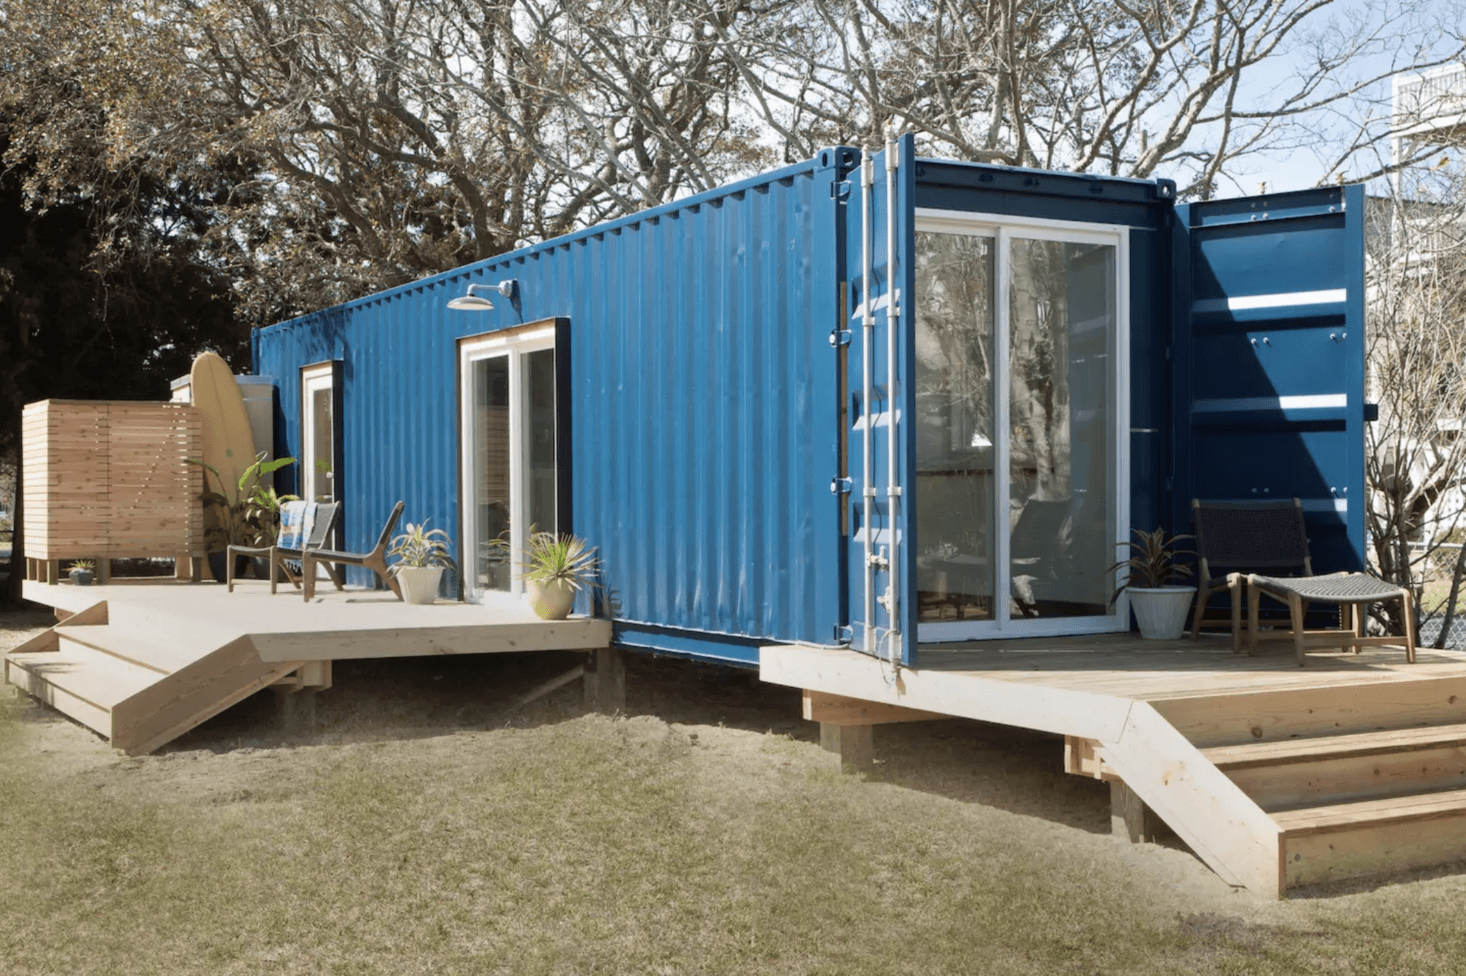 10 repurposed shipping containers are now beautiful houses